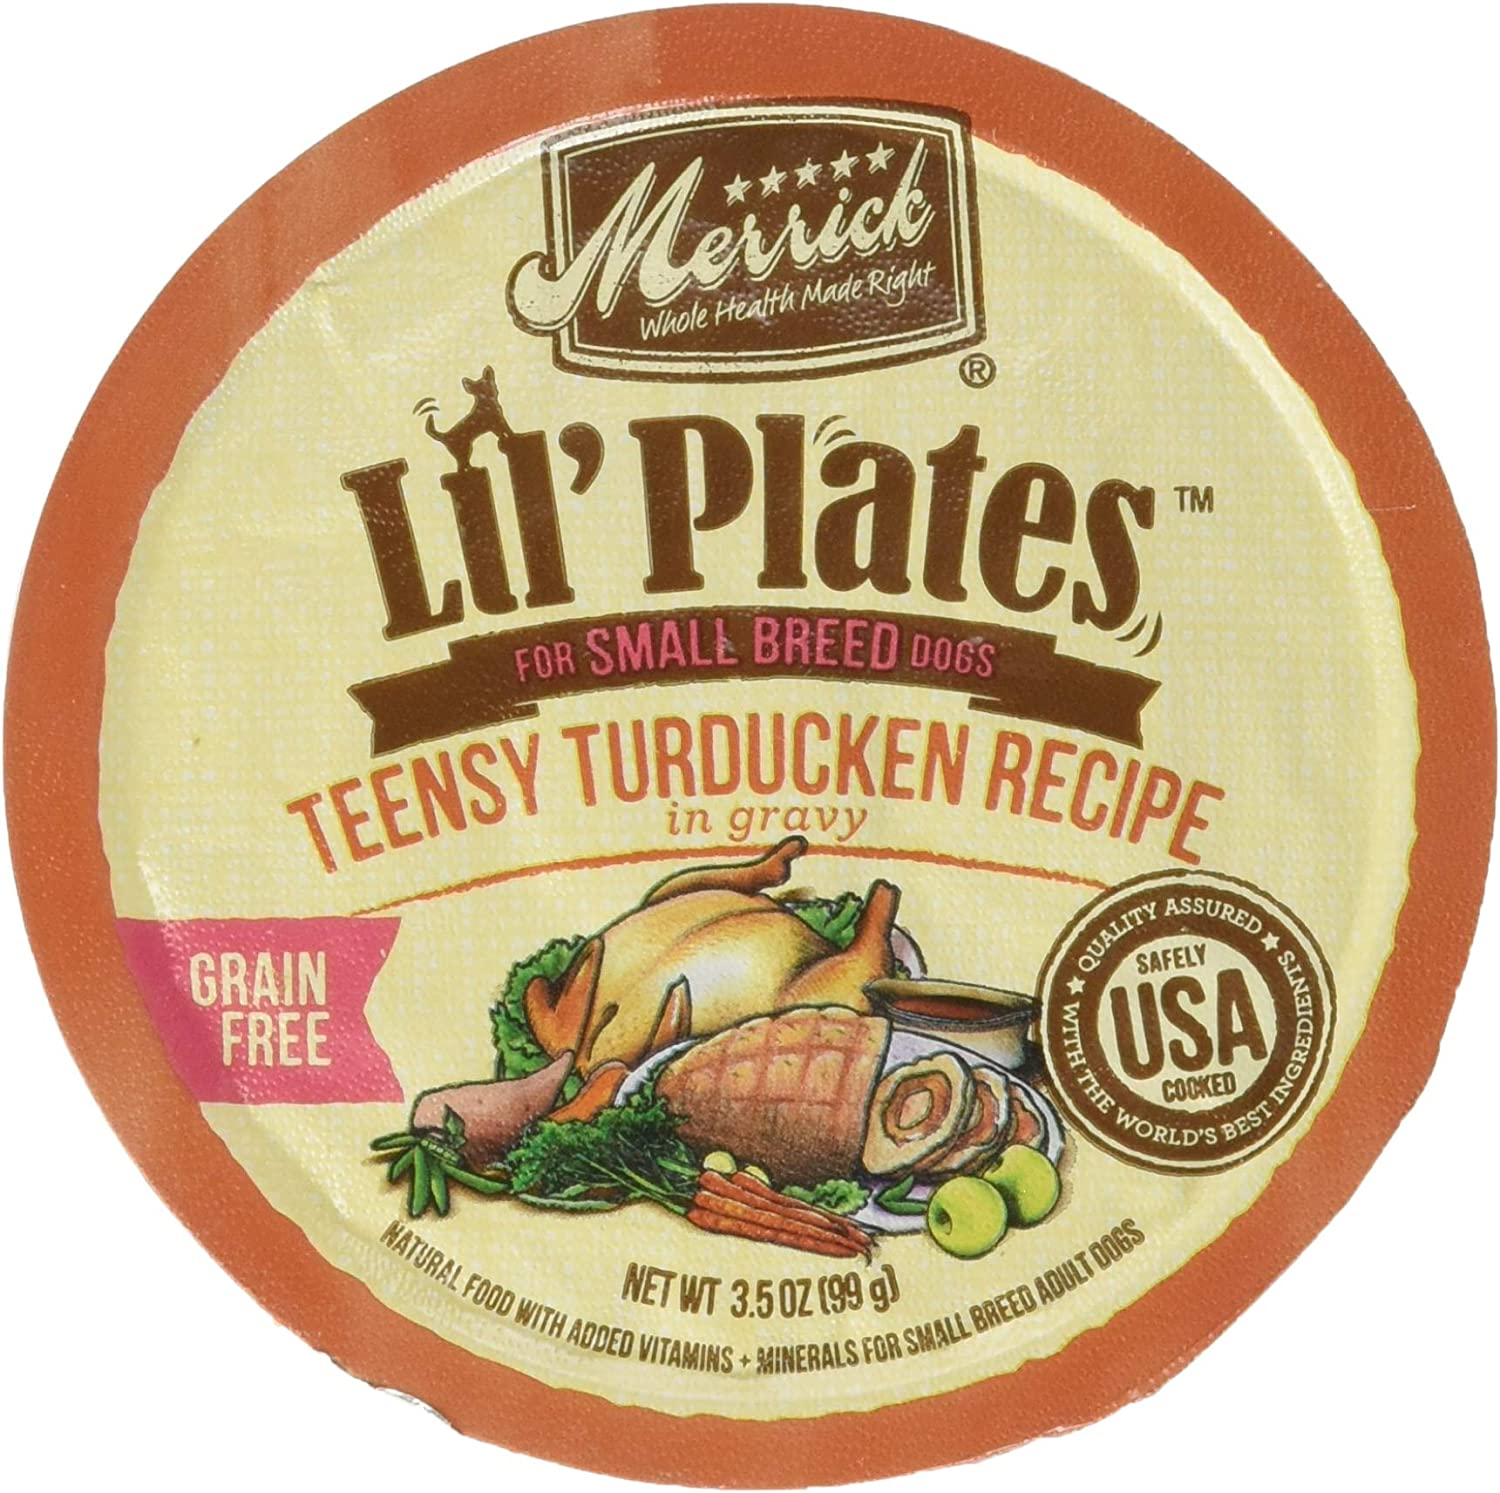 Simple Solution Merrick Lil's Plates 3.5-Oz Grain Free Wet Food for Small Breed Dogs12 Cans - Teensy Turducken in Gravy